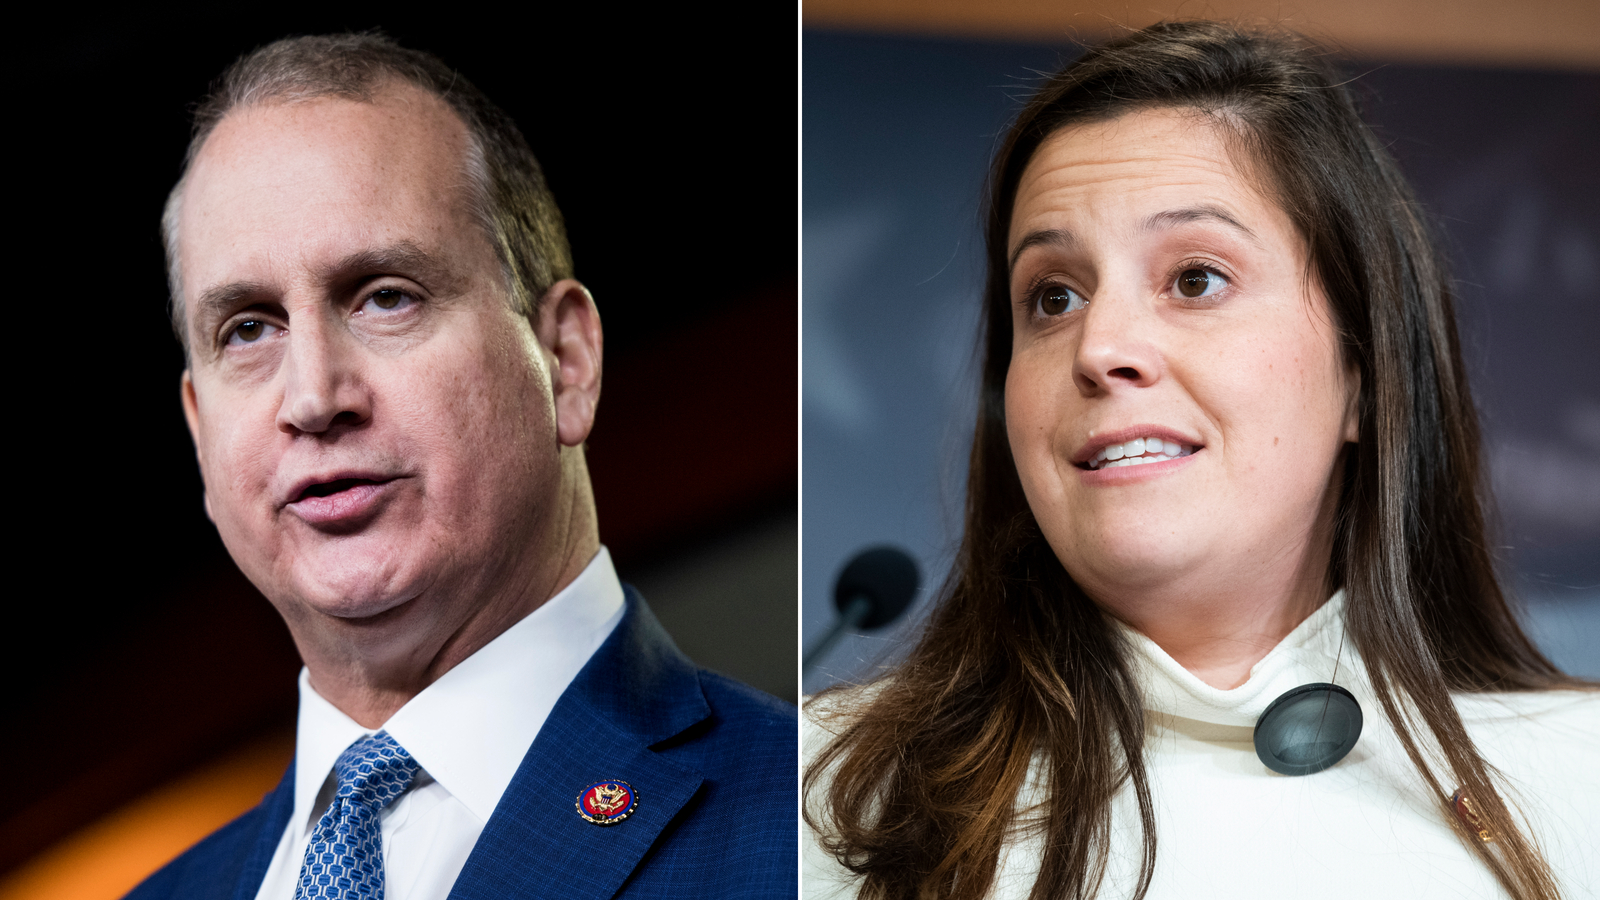 Two GOP lawmakers who supported the Equality Act in 2019 changed their votes this time